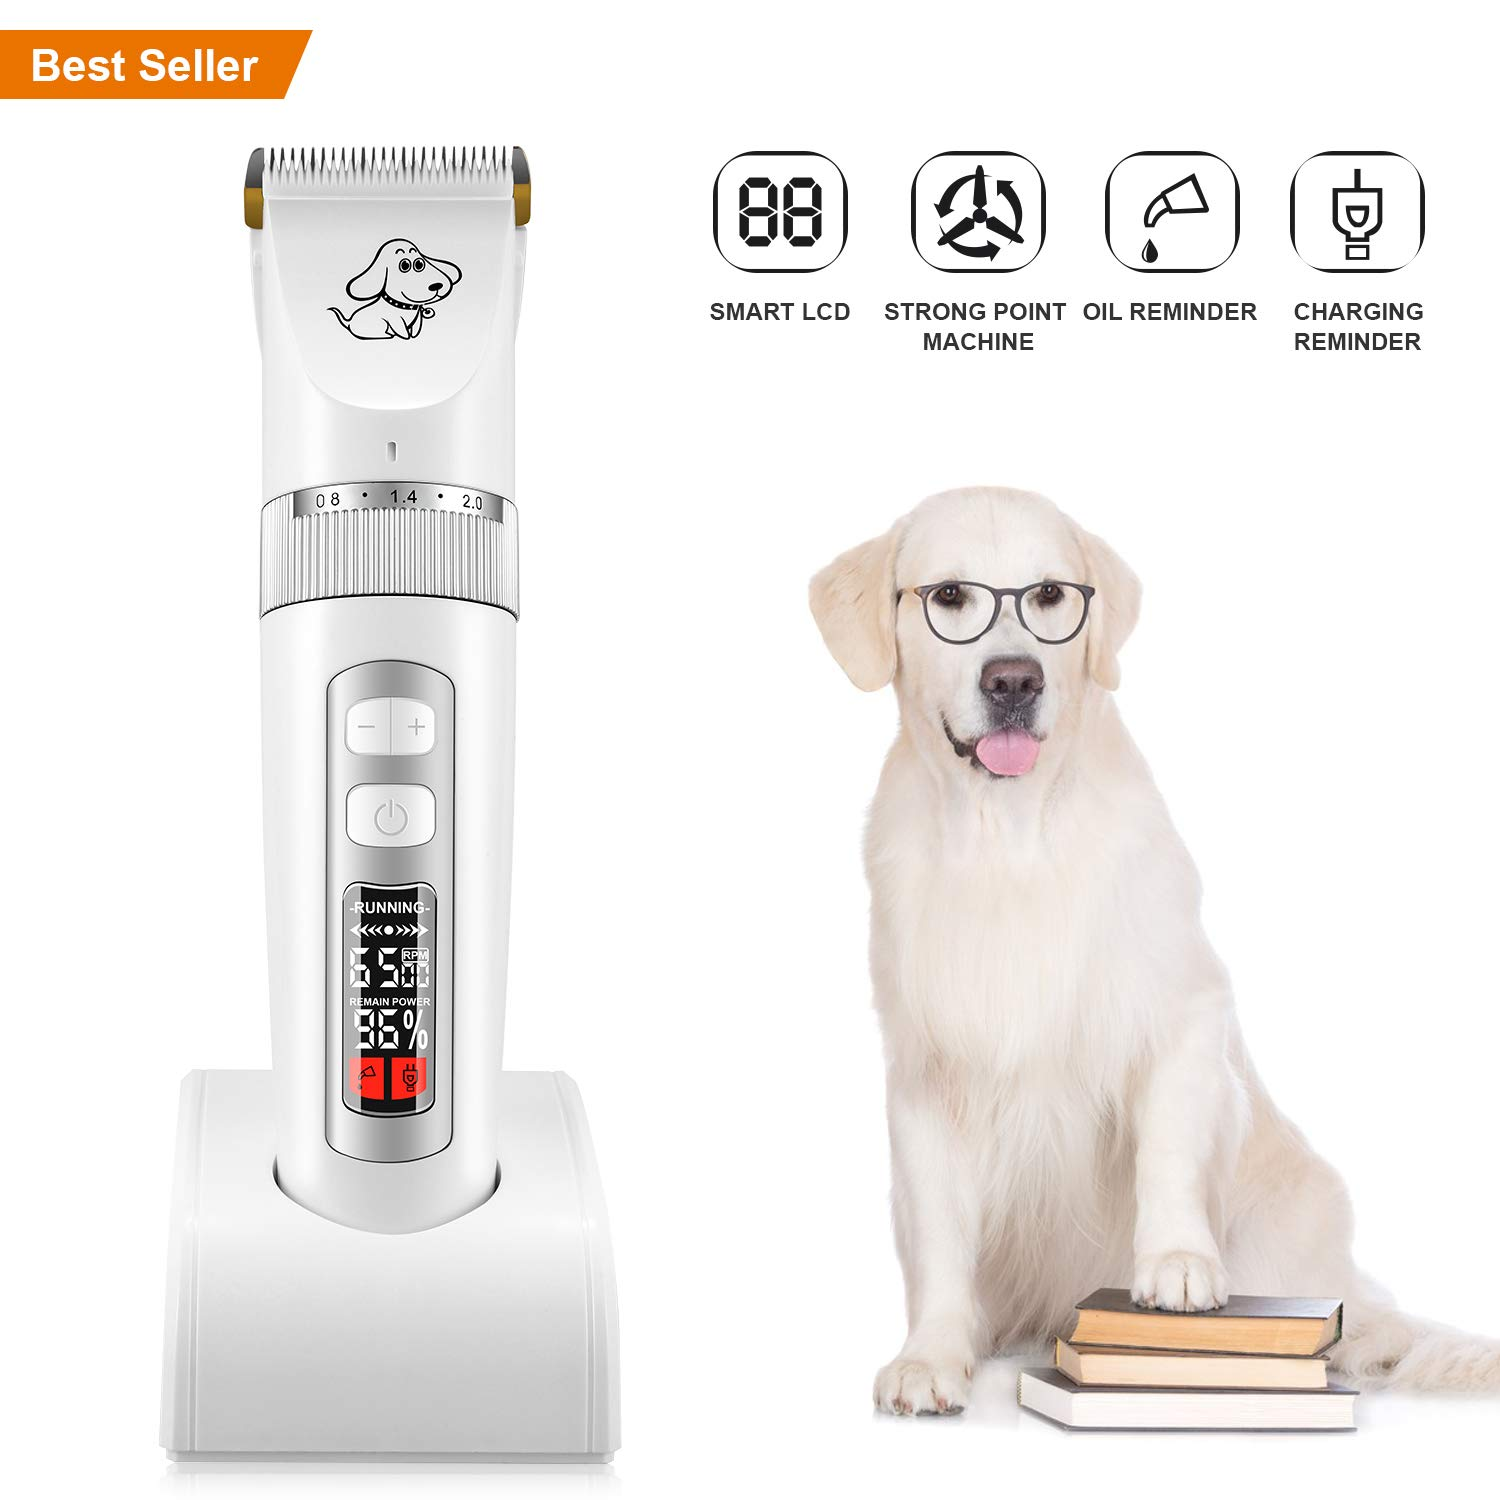 AFBEST Dog Grooming Clippers, Low Noise Rechargeable Cordless Dog Clippers, 3-Speed Professional Dog Clippers with 2 Charge Modes, LCD Screen Indication Intelligent Protection